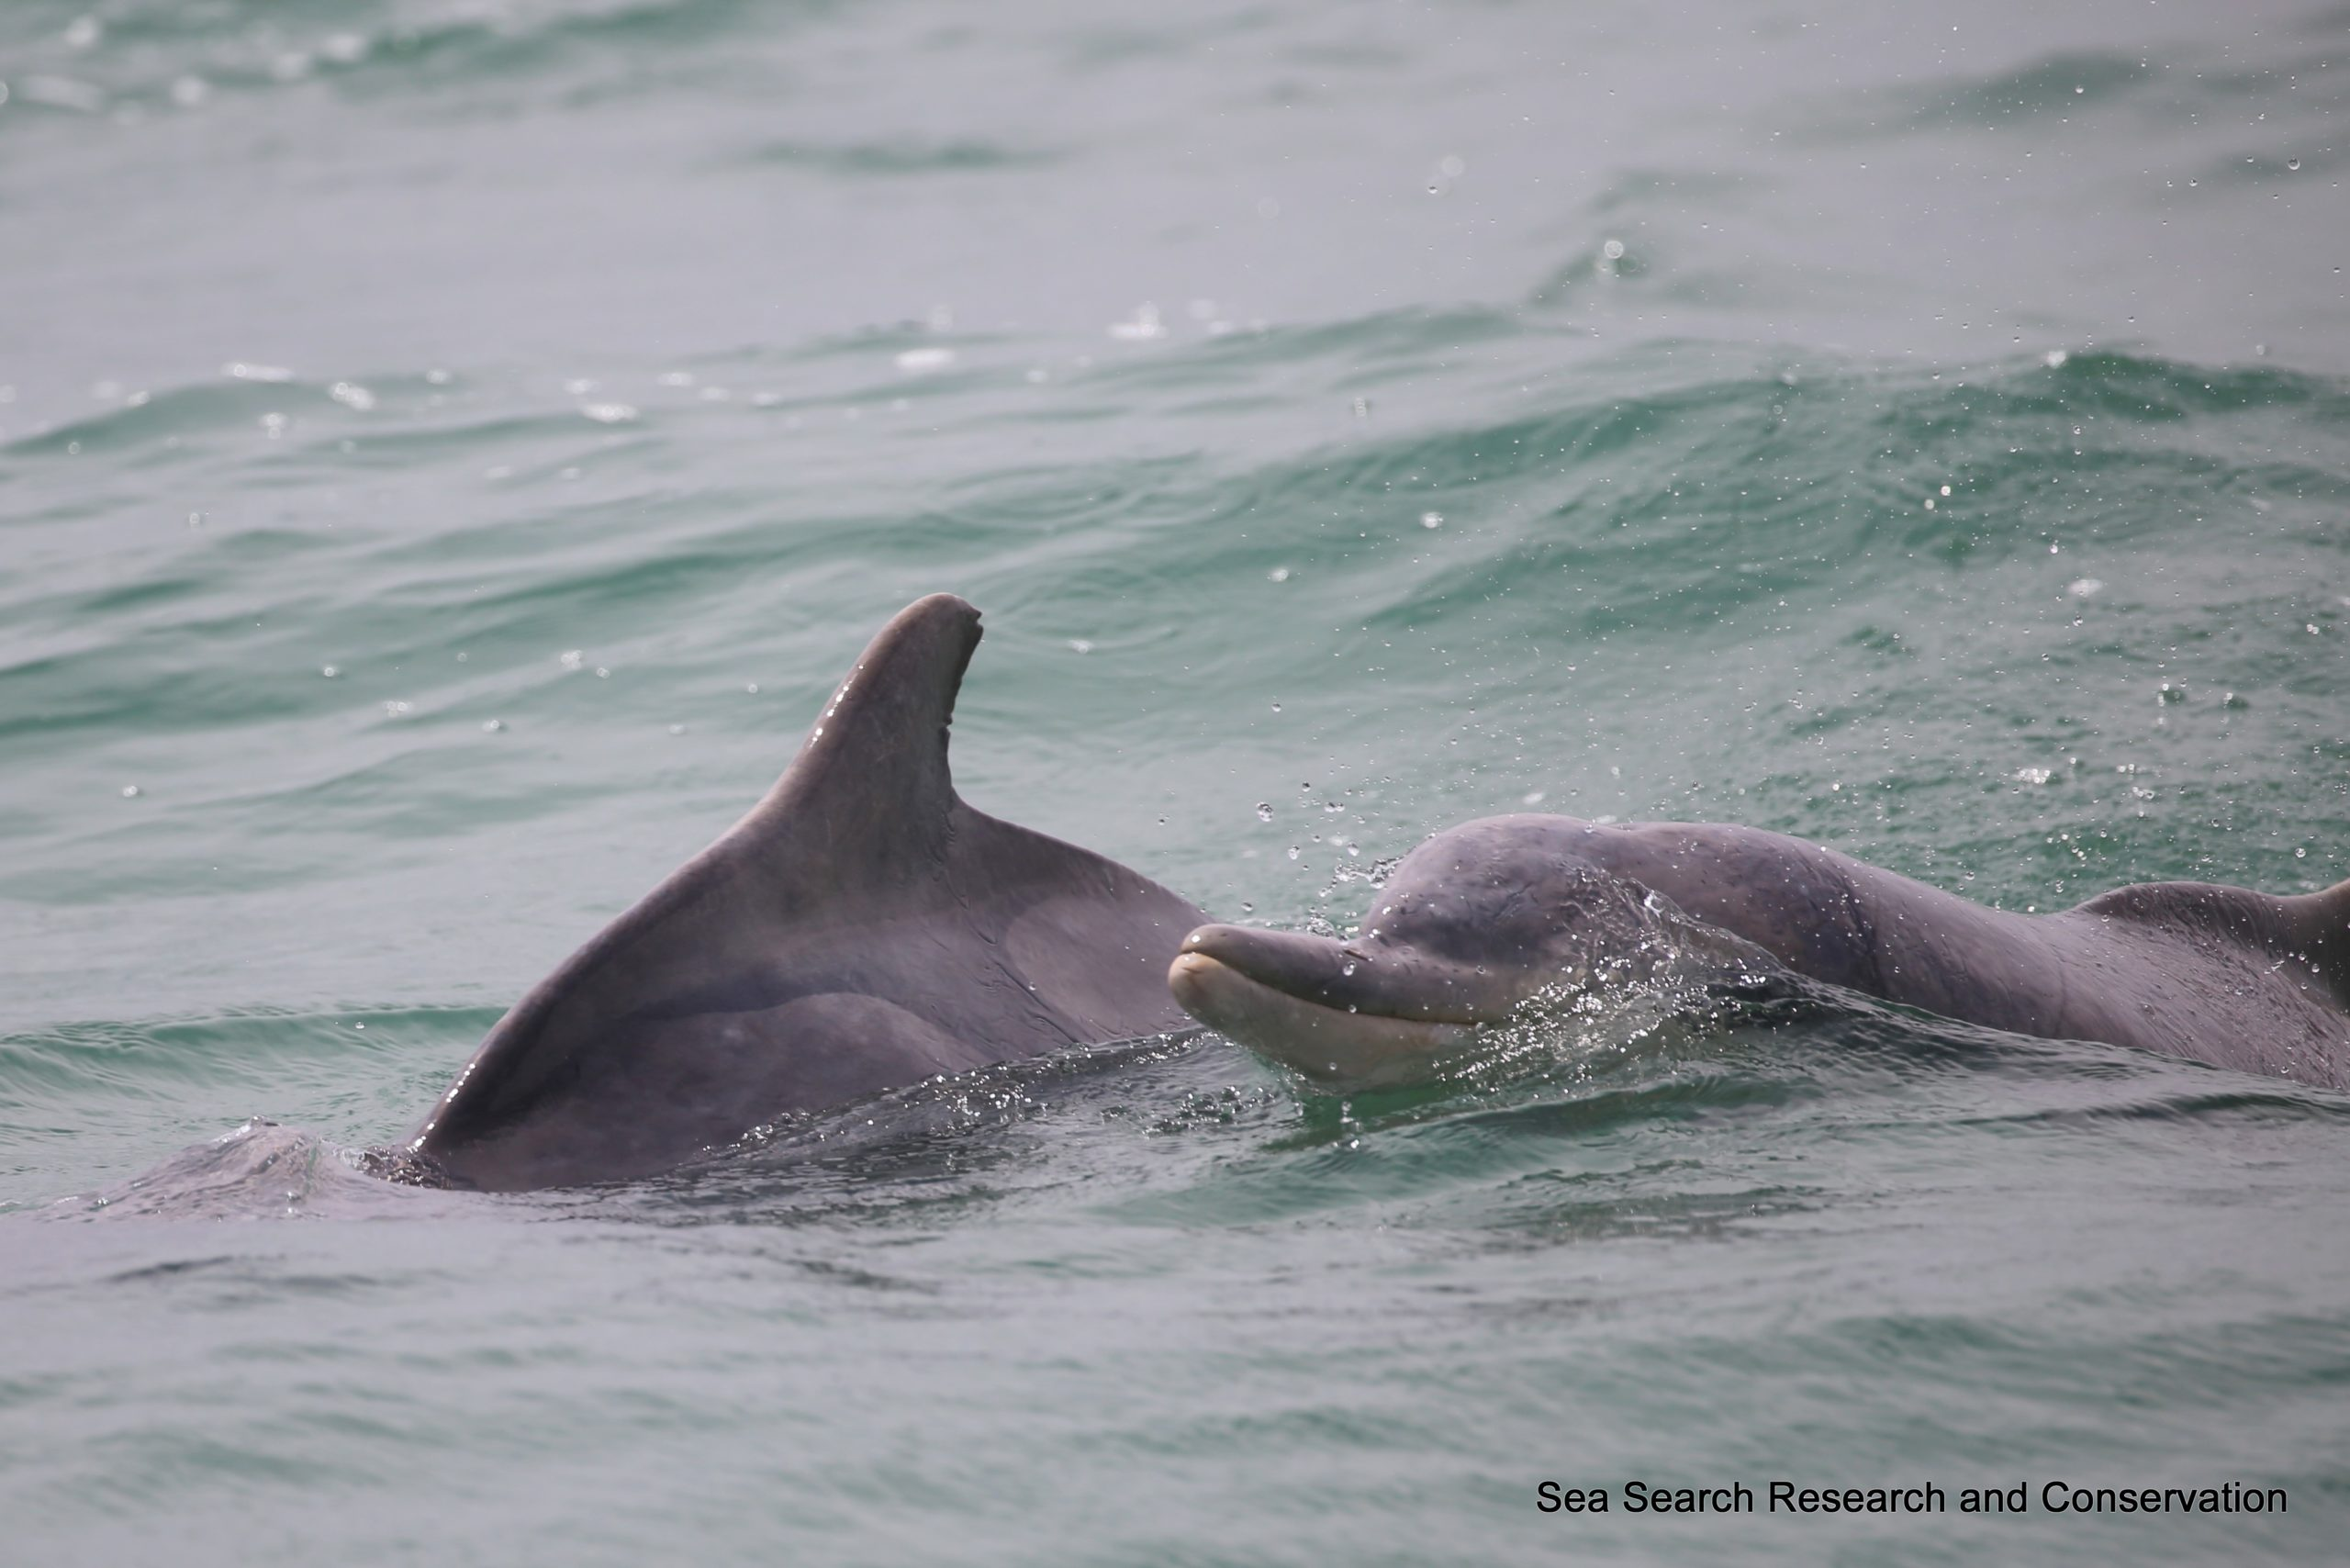 Eavesdropping on endangered humpback dolphins (Sousa plumbea) in Kleinbaai, South Africa.